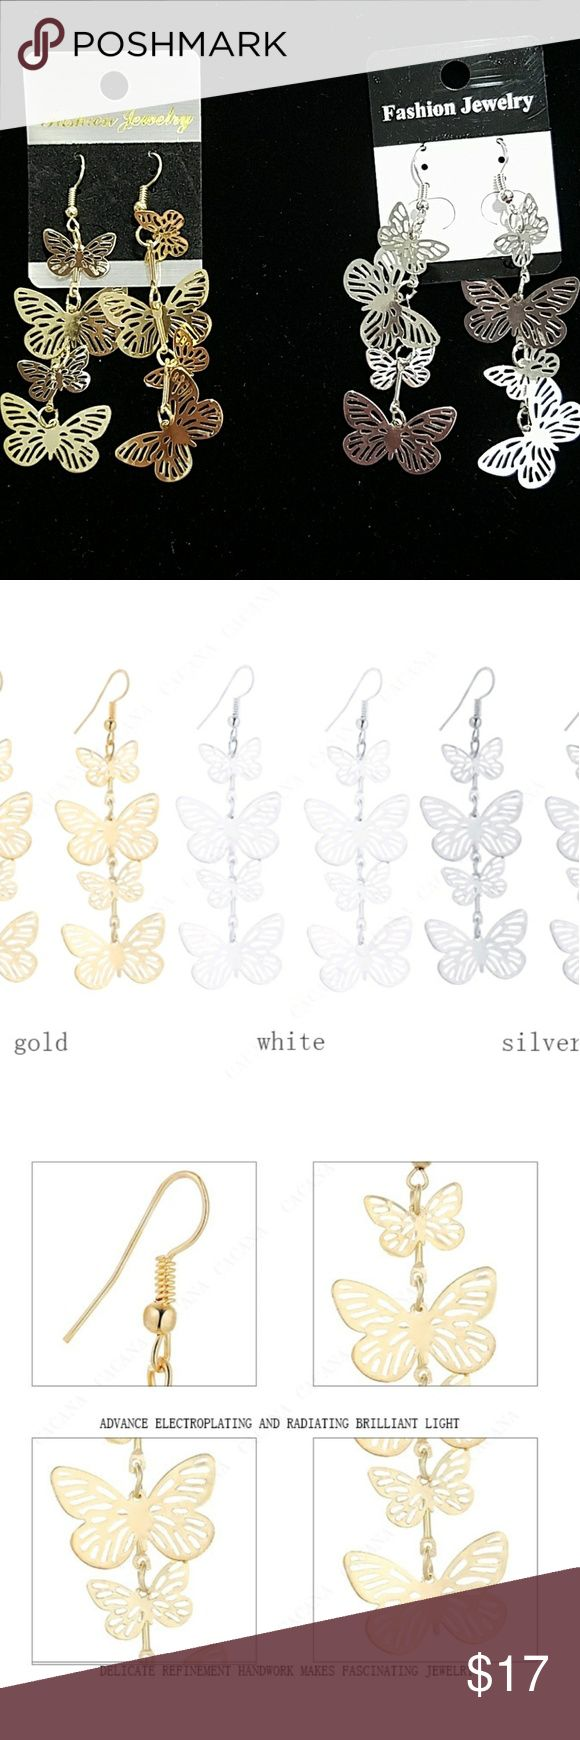 ANY 4 PAIRS FOR $15! DANGLING BUTTERFLY EARRINGS!! Design consists of 4 butterflies. Earrings are not heavy so they won't make you feel weighted down & no worries about stretching out your earlobes! Earrings are thin, lightweight Alloy metal. They are priced great! Bundle & save on shipping! Choose Gold or Silver in Options. Once you add 4 pairs to your bundle, submit offer for $15 & it will be accepted! Gold stock# 117 Silver Stock # 217 Jewelry Earrings